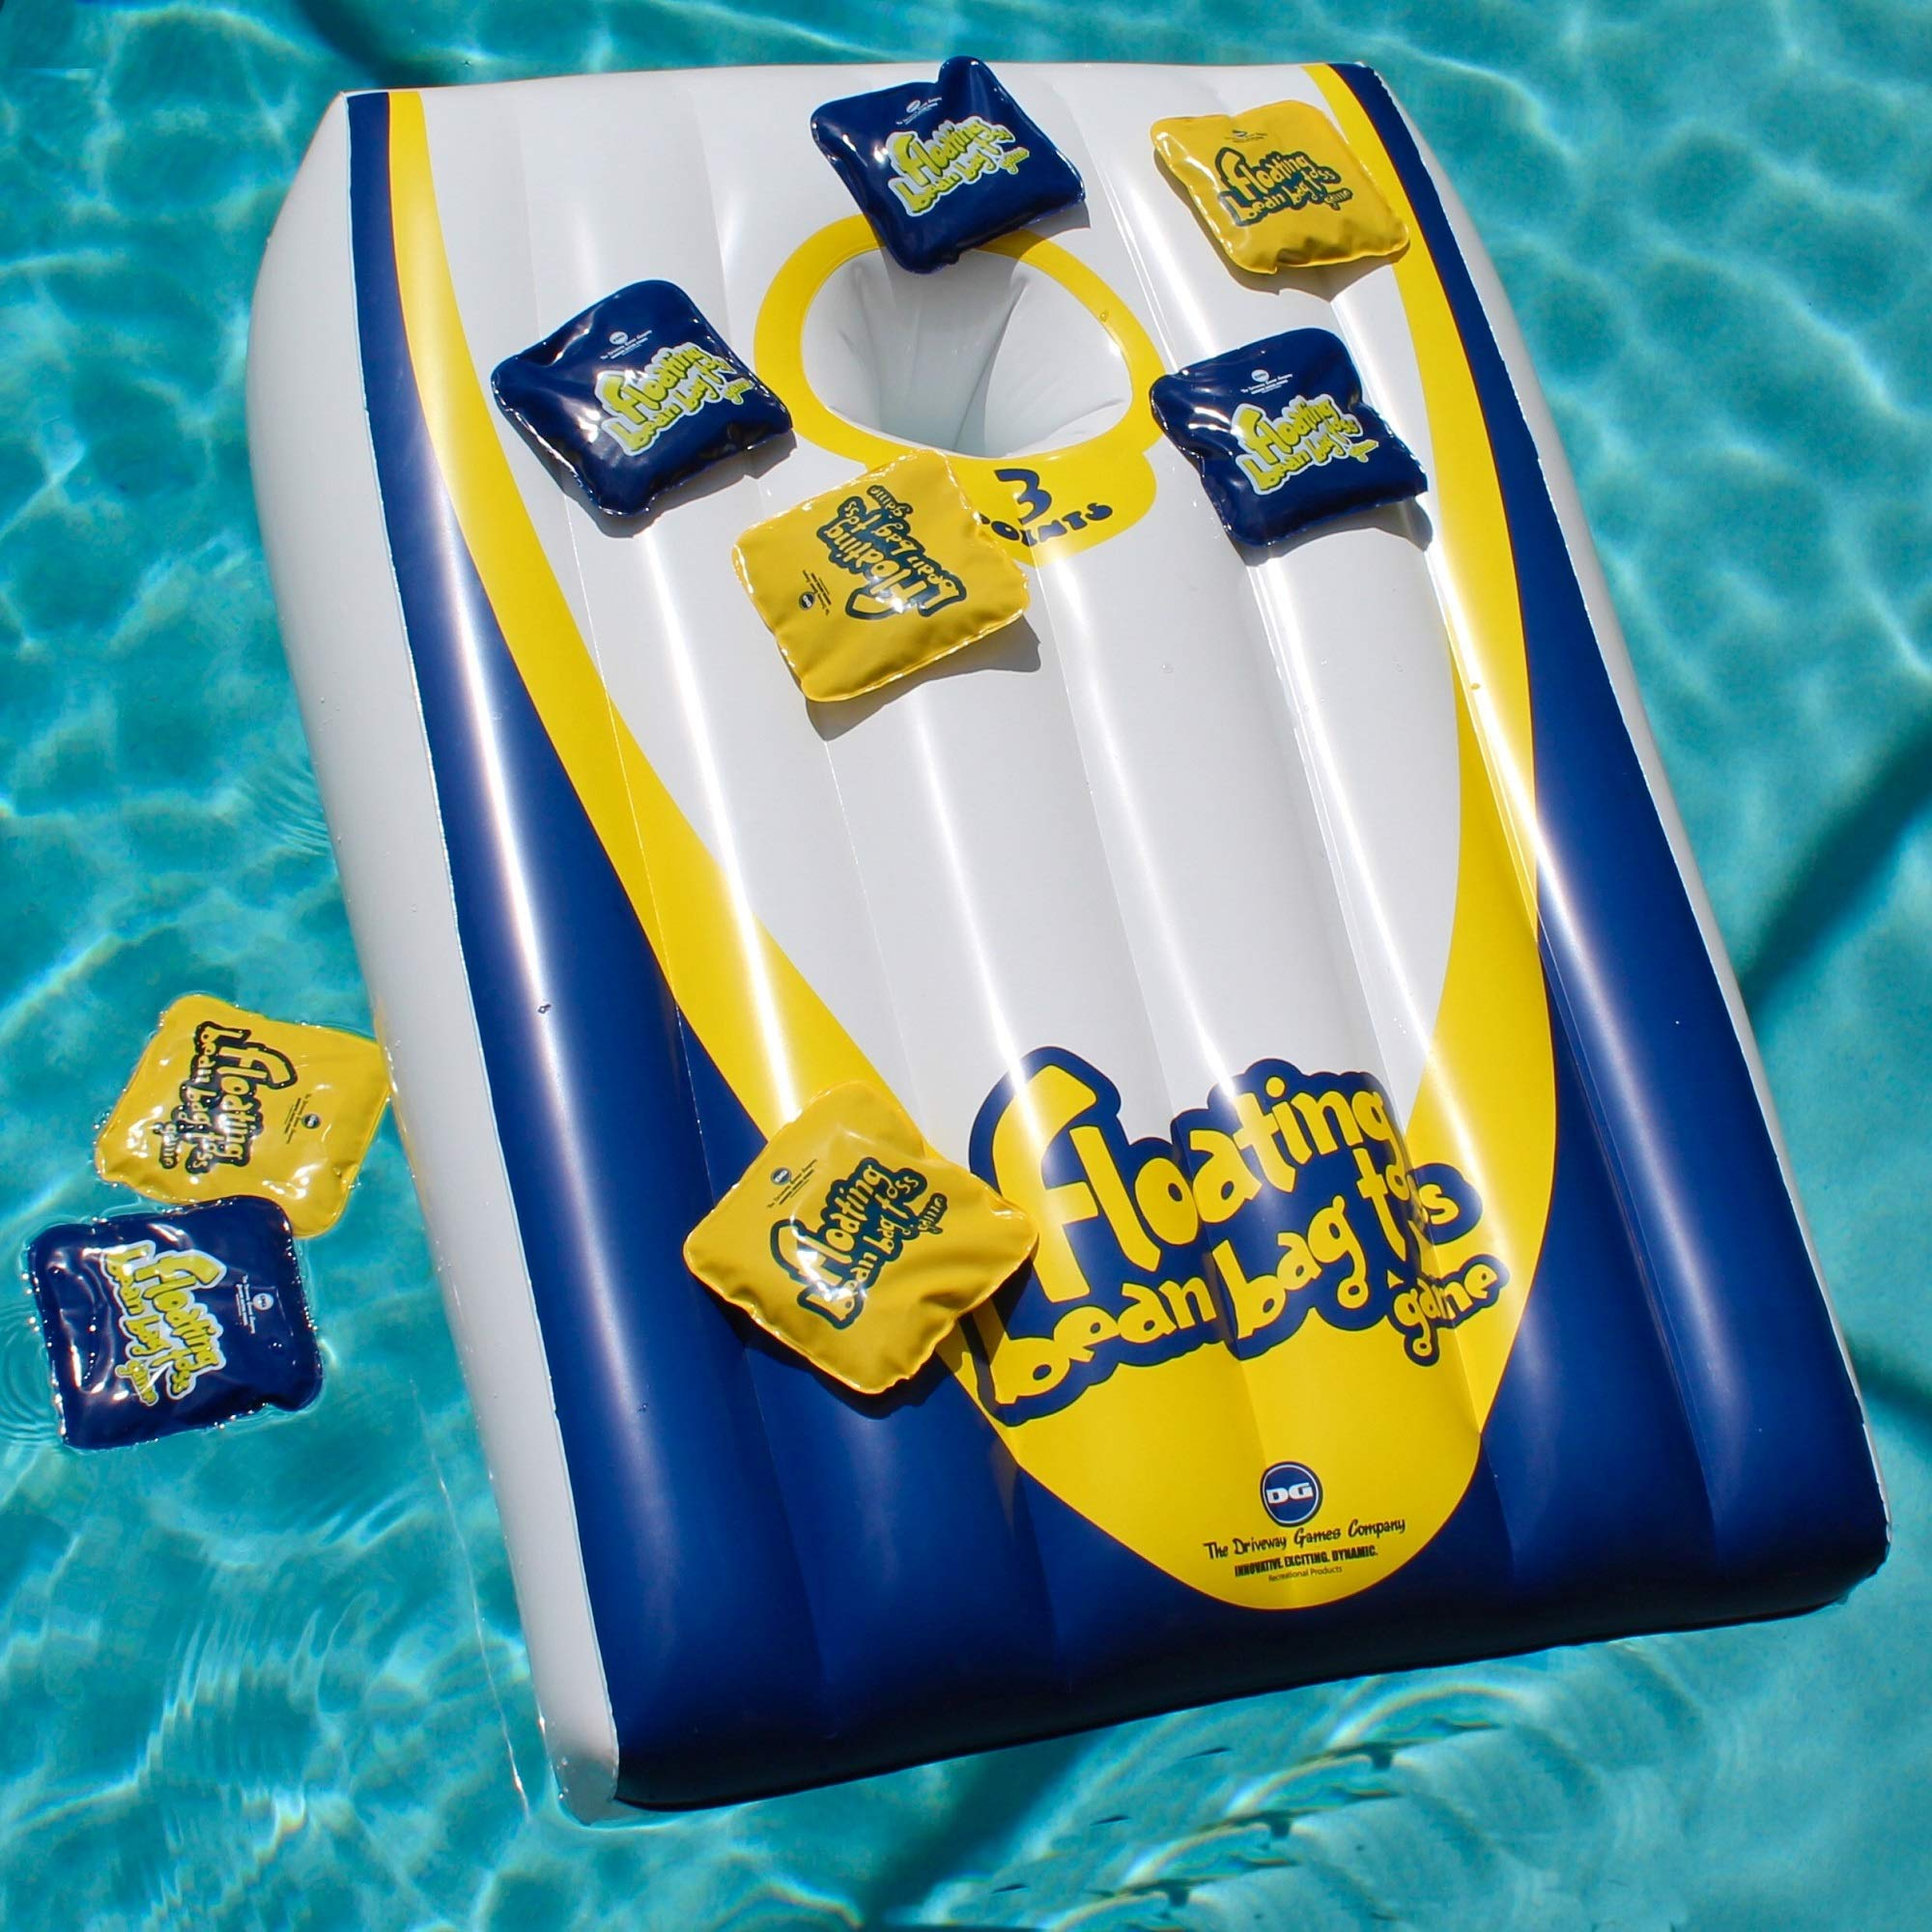 Drive Way Games Floating Cornhole Set. Inflatable Corn-Toss Board & Floating Bean Bags for Pool, Lake, Water by Driveway Games